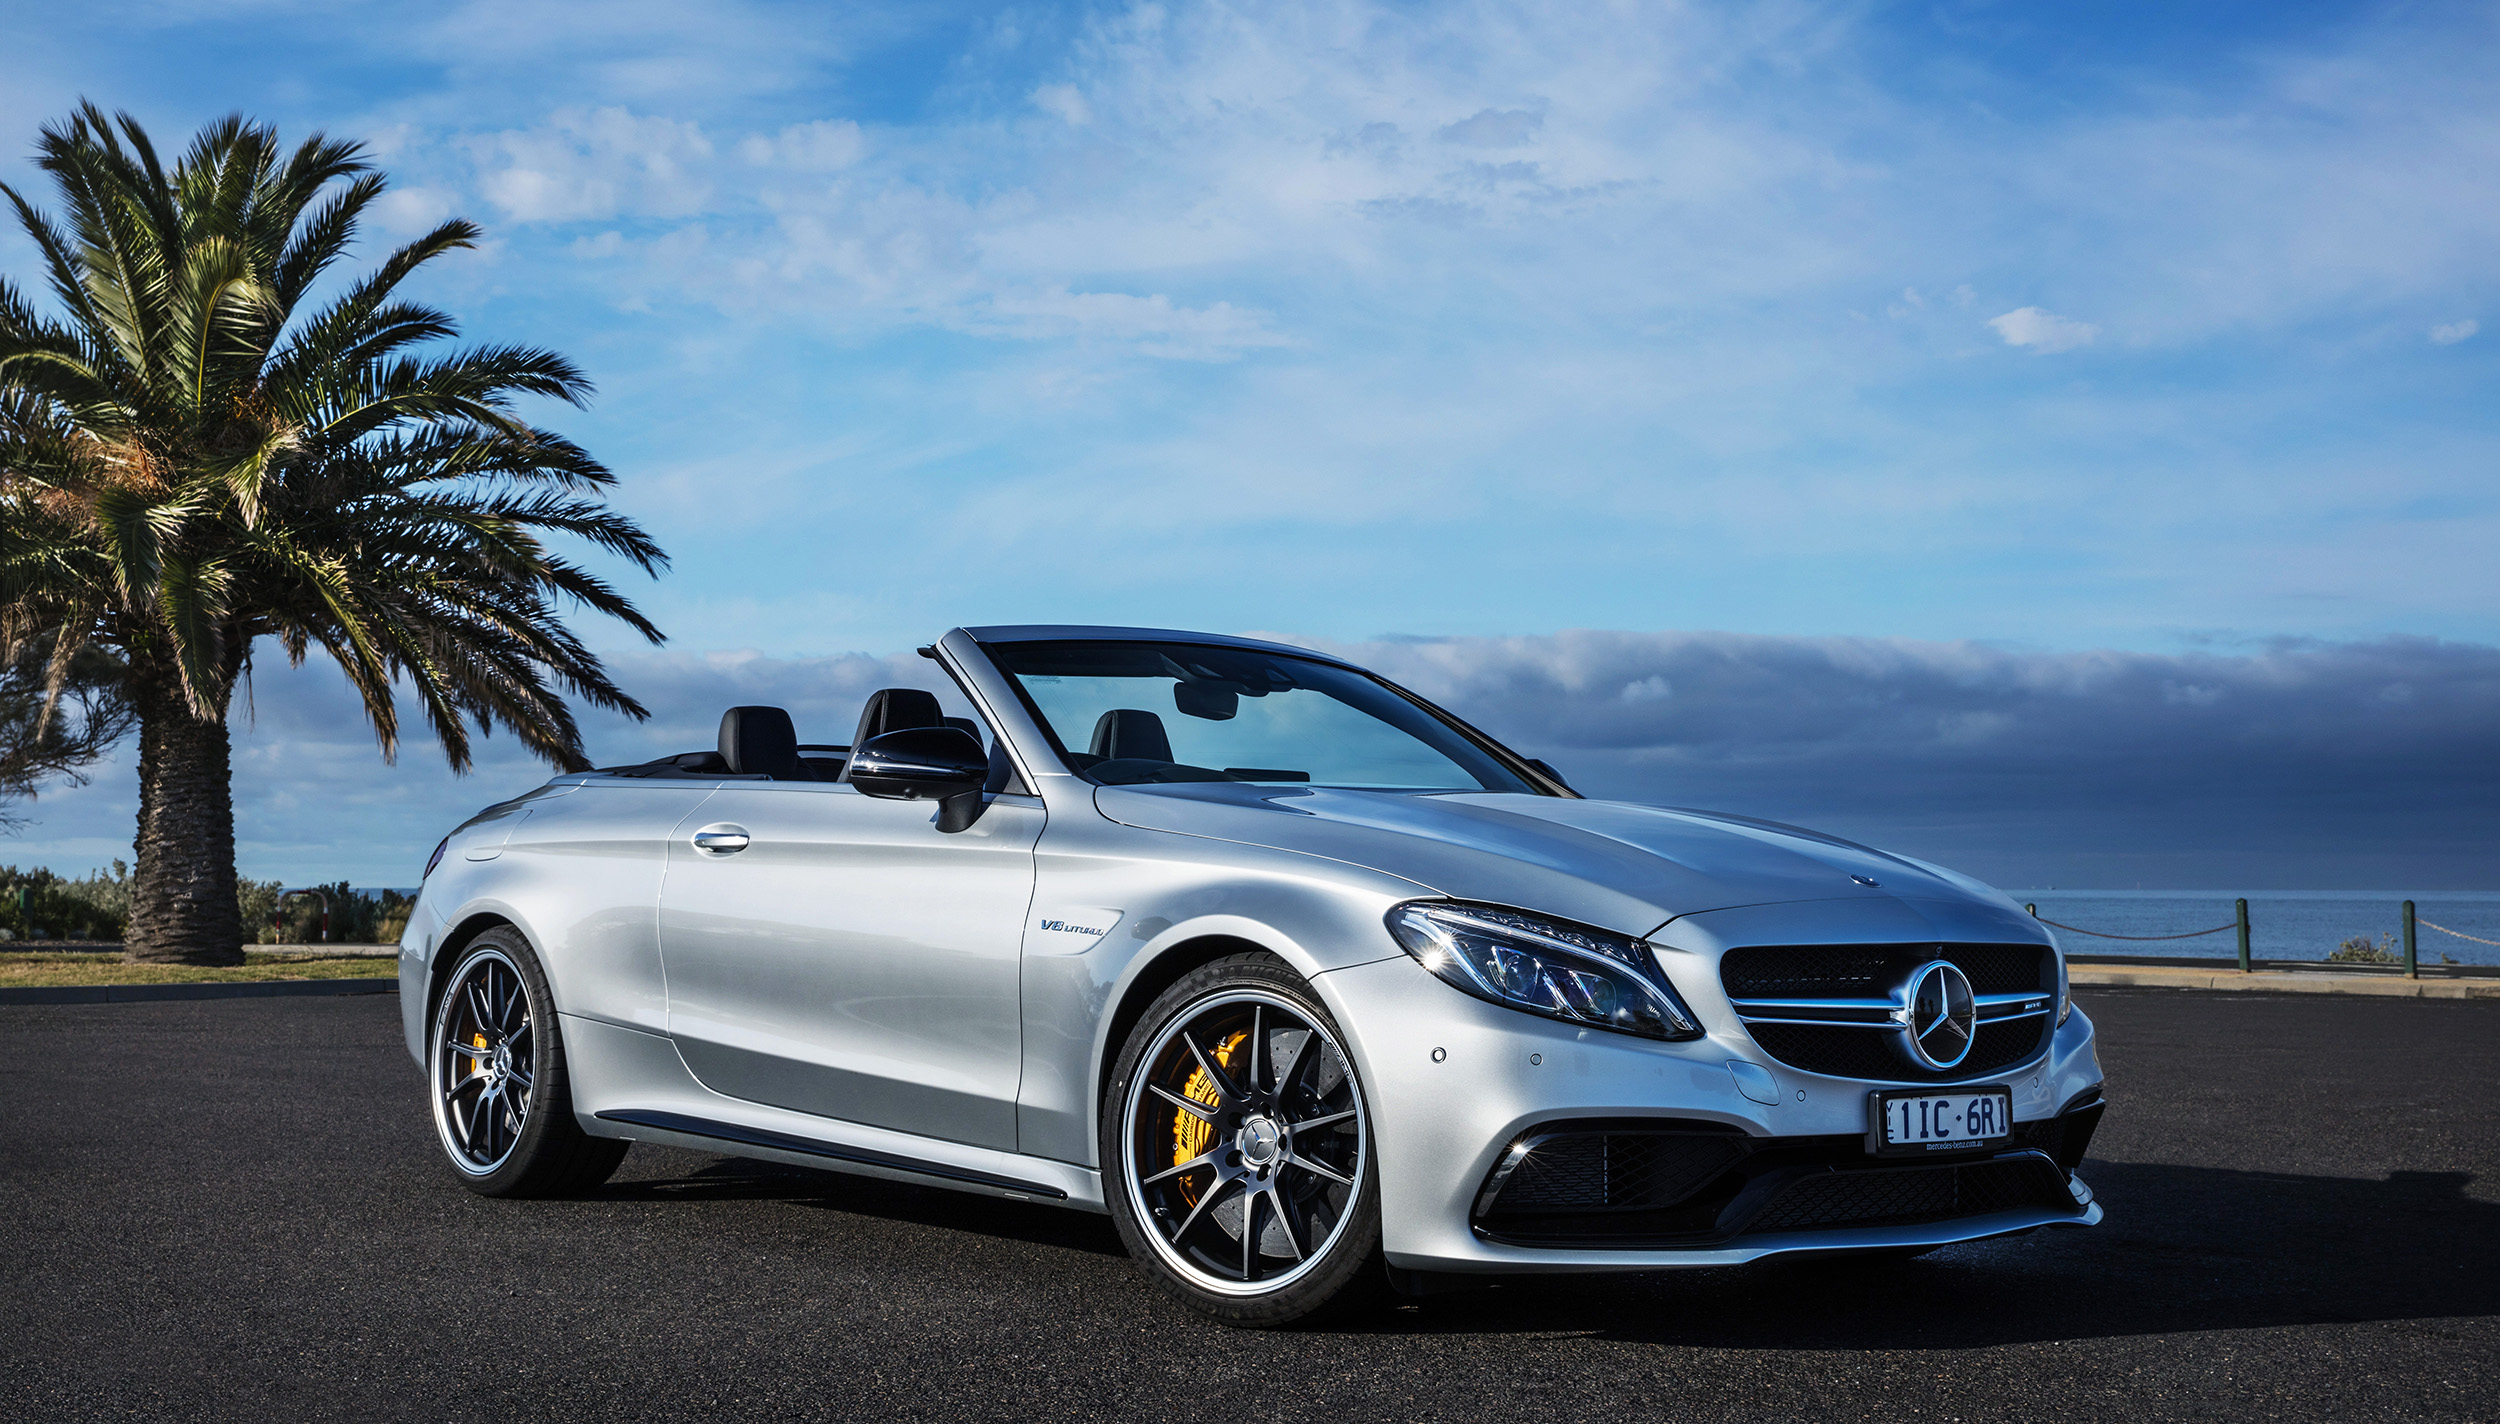 2017 mercedes amg c63 s cabriolet review caradvice. Black Bedroom Furniture Sets. Home Design Ideas